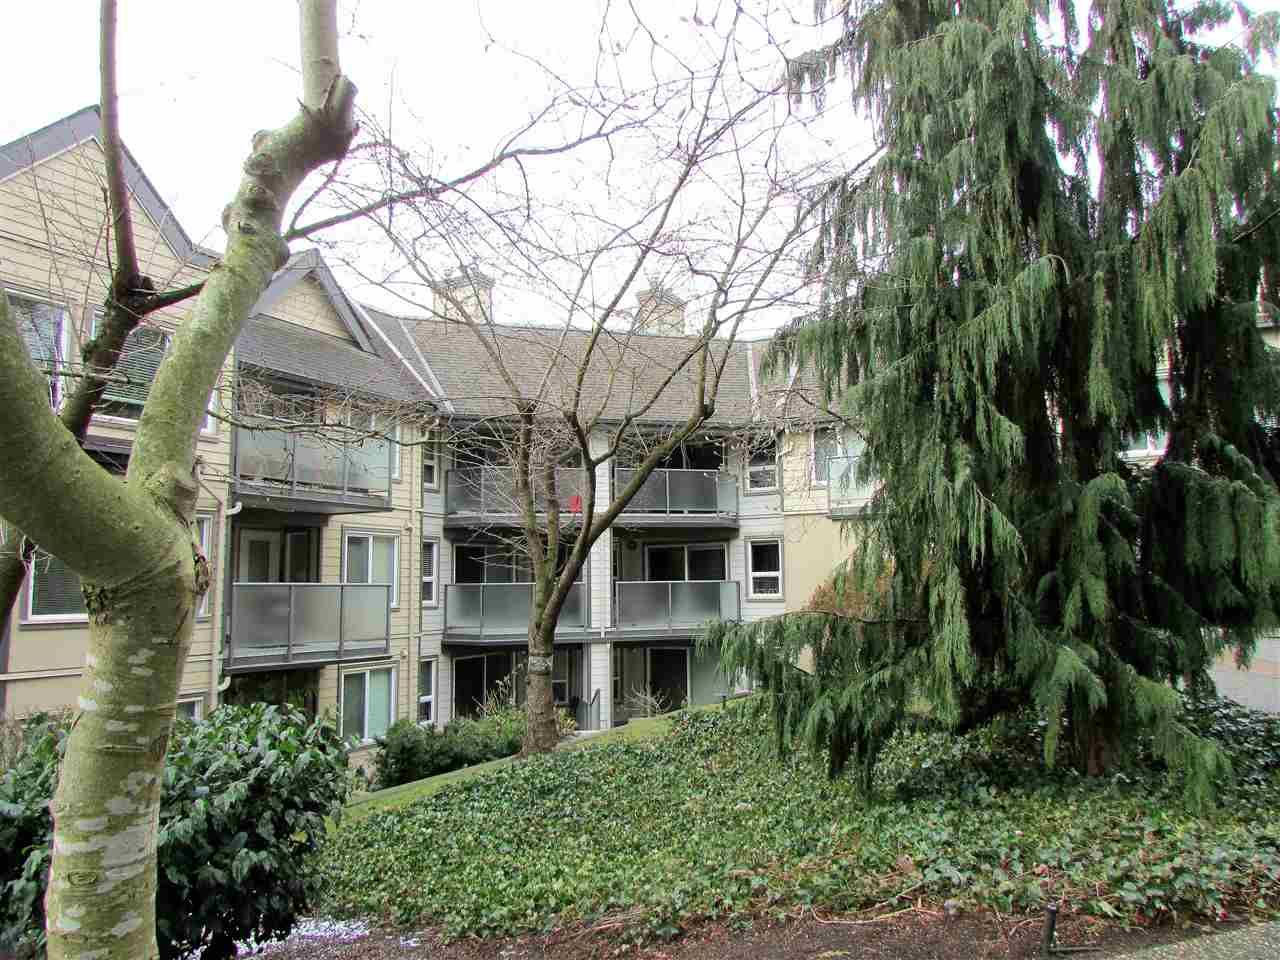 """Main Photo: 403 6707 SOUTHPOINT Drive in Burnaby: South Slope Condo for sale in """"Mission Woods"""" (Burnaby South)  : MLS®# R2142149"""